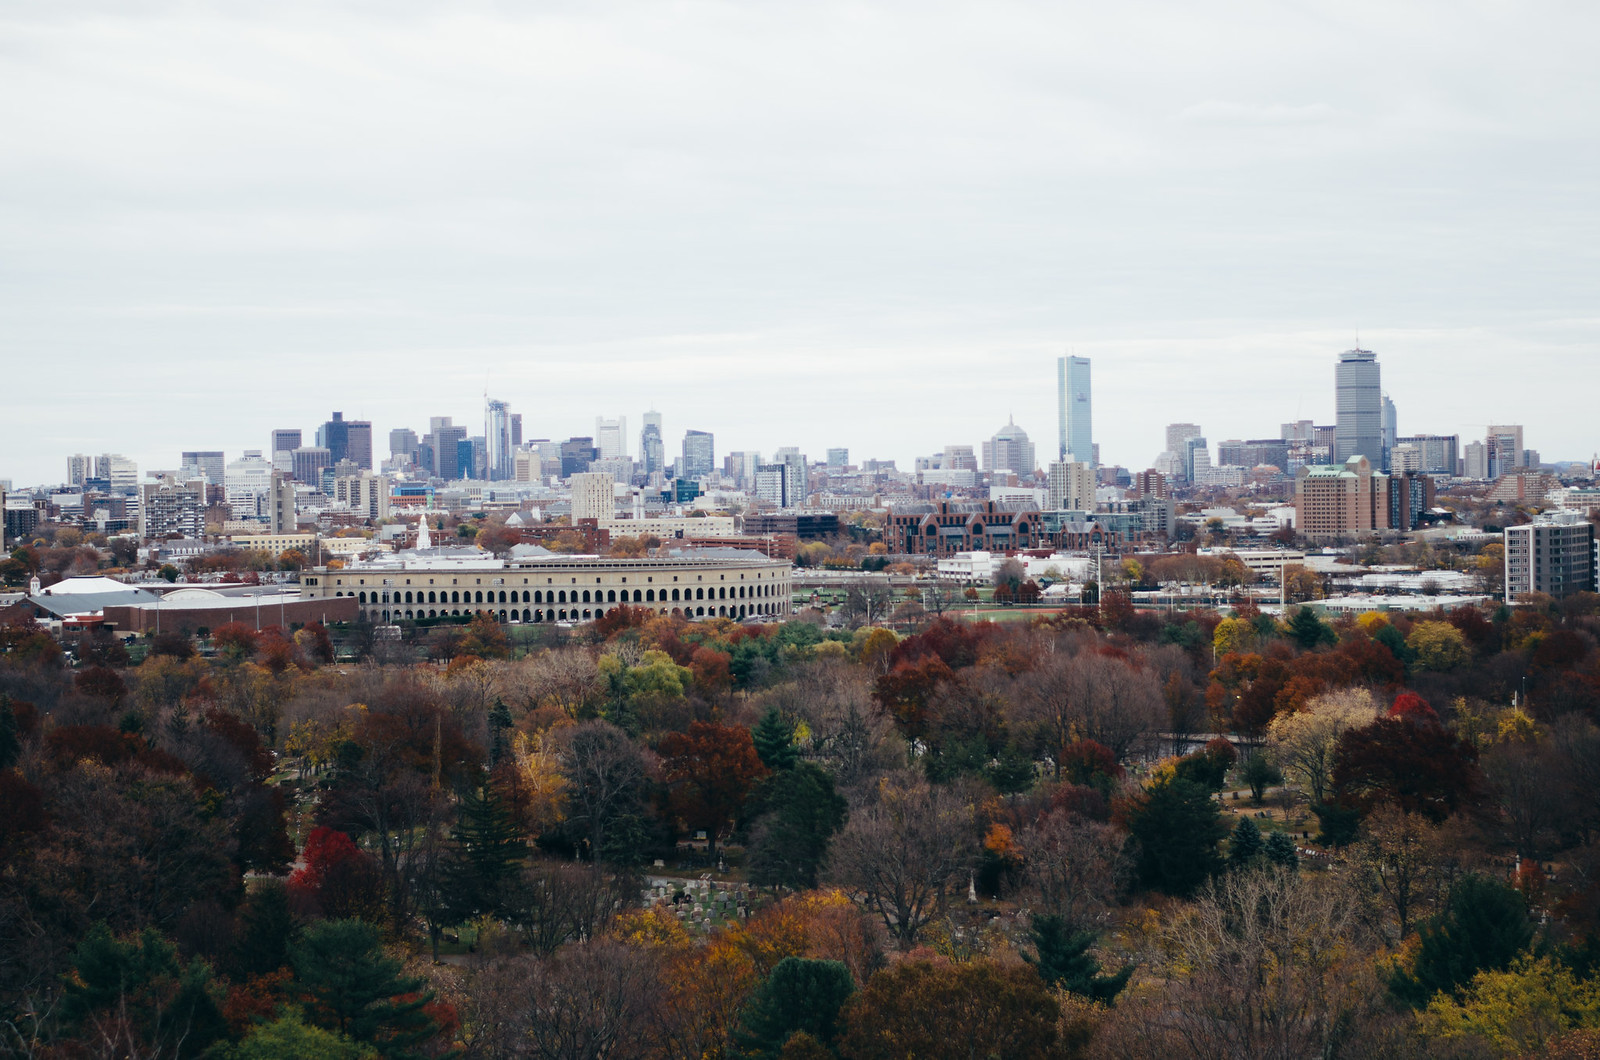 View of Boston from the view of Mount Auburn Cemetery on juliettelaura.blogspot.com